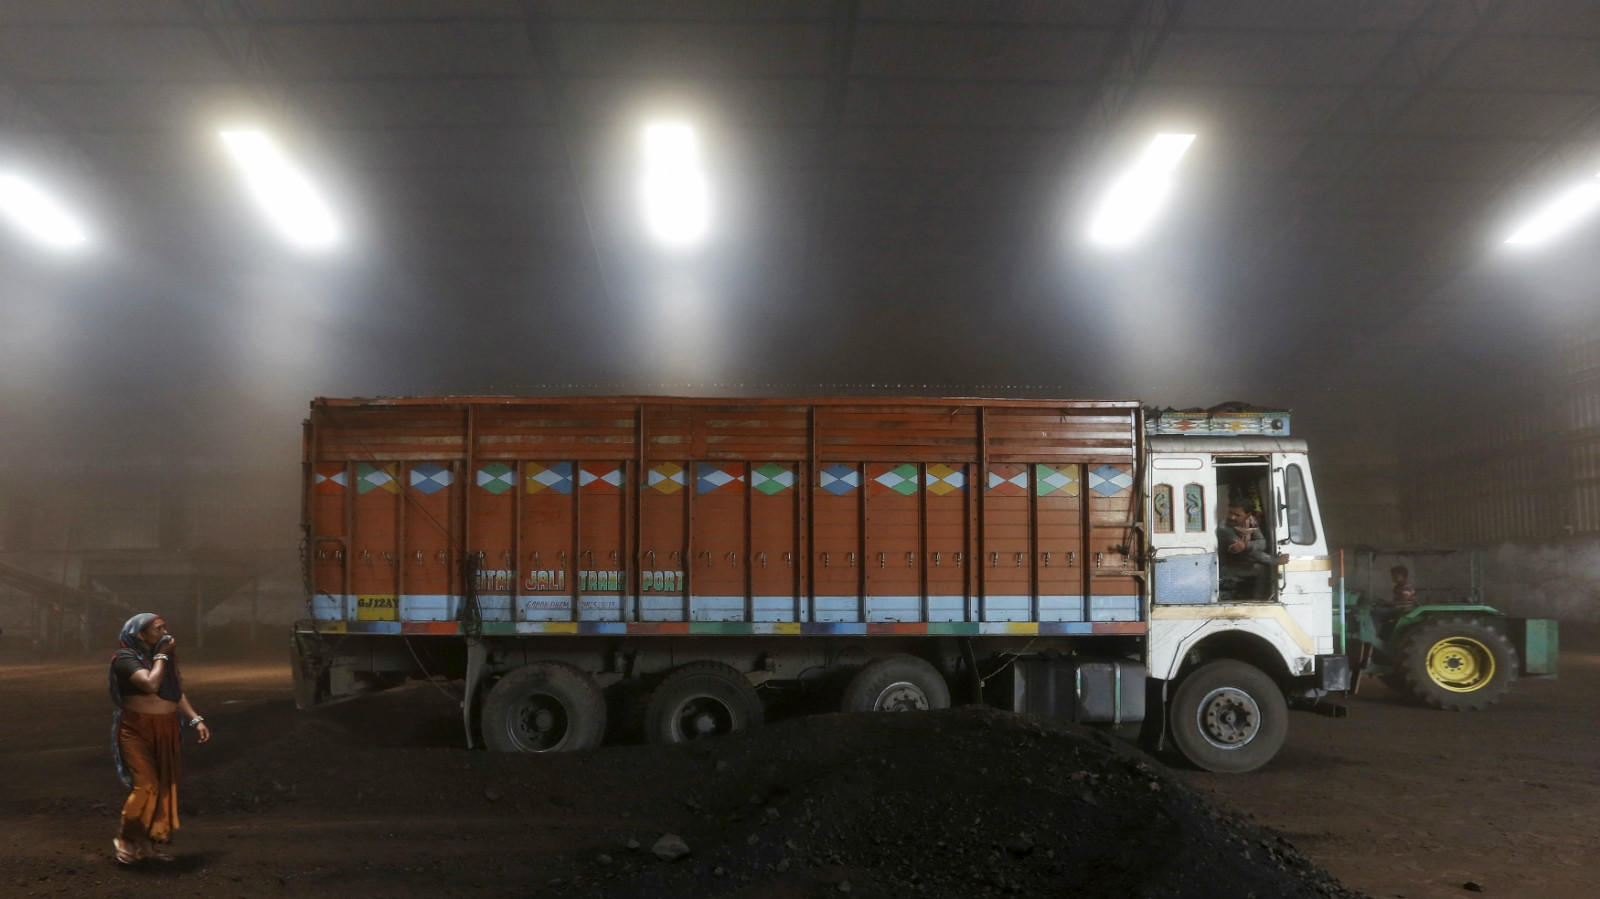 A worker speaks with the driver after unloading coal from a supply truck at a yard on the outskirts of the western Indian city of Ahmedabad April 15, 2015. Fewer power cuts are likely in India this summer after a surge in output at Coal India helped generators amass record stocks, a turnaround for Narendra Modi who had to battle a power crisis within months of becoming prime minister last May. Fast-track mine approvals, tighter production oversight and more flexibility in coal sales have helped power station stocks recover from a six-year low hit in October, vindicating Modi's pitch to voters as the state leader who brought round-the-clock power to industrial Gujarat.